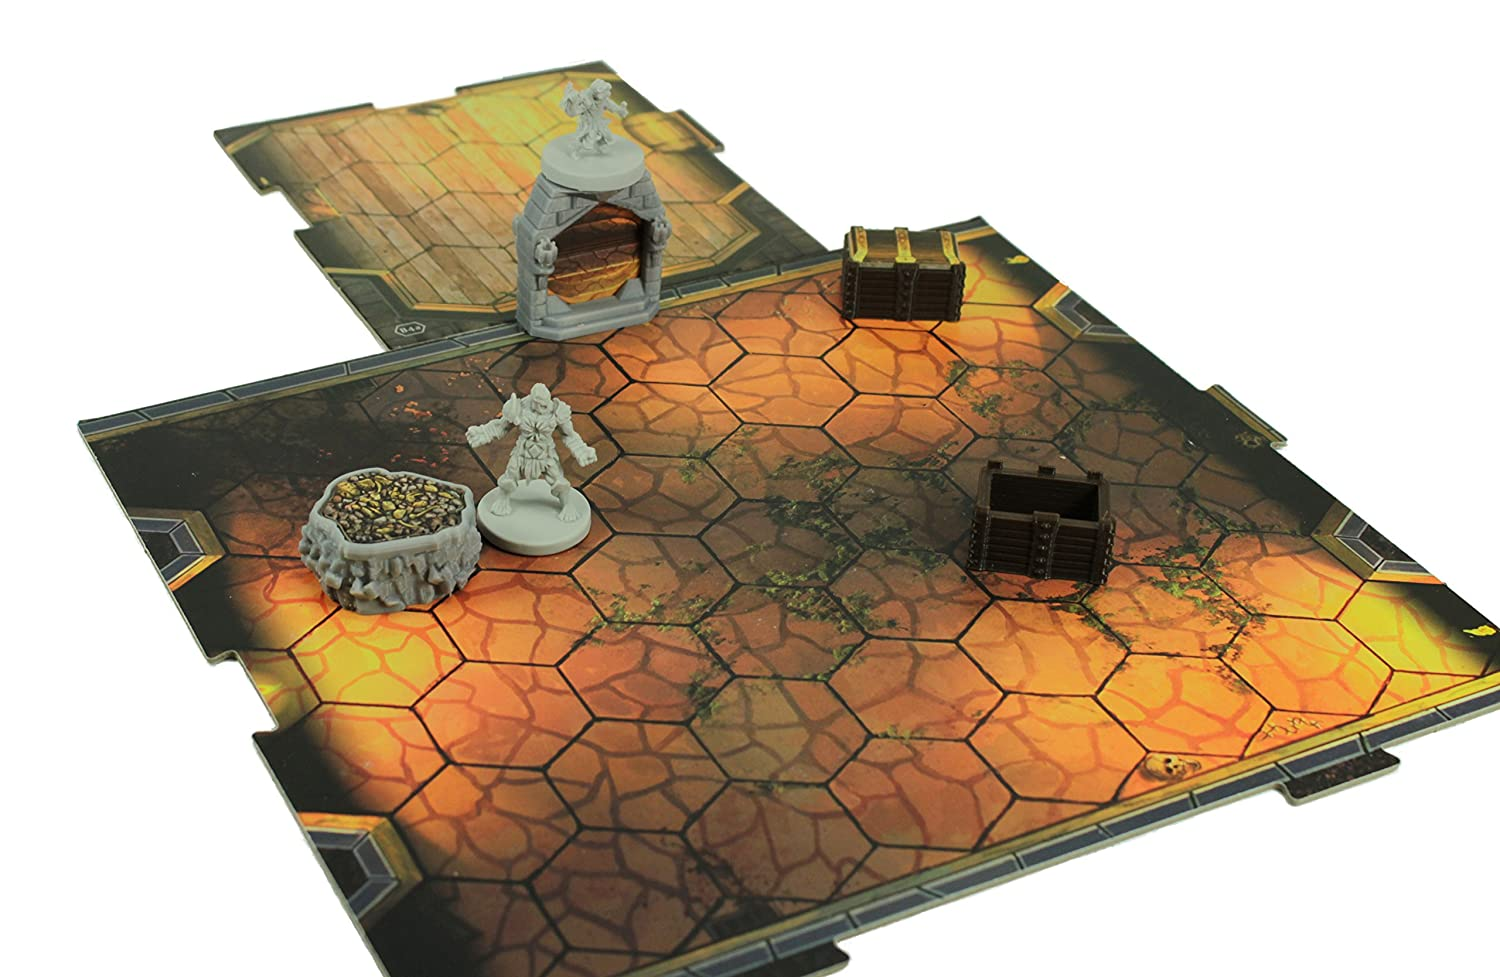 Bases and doors on tiles